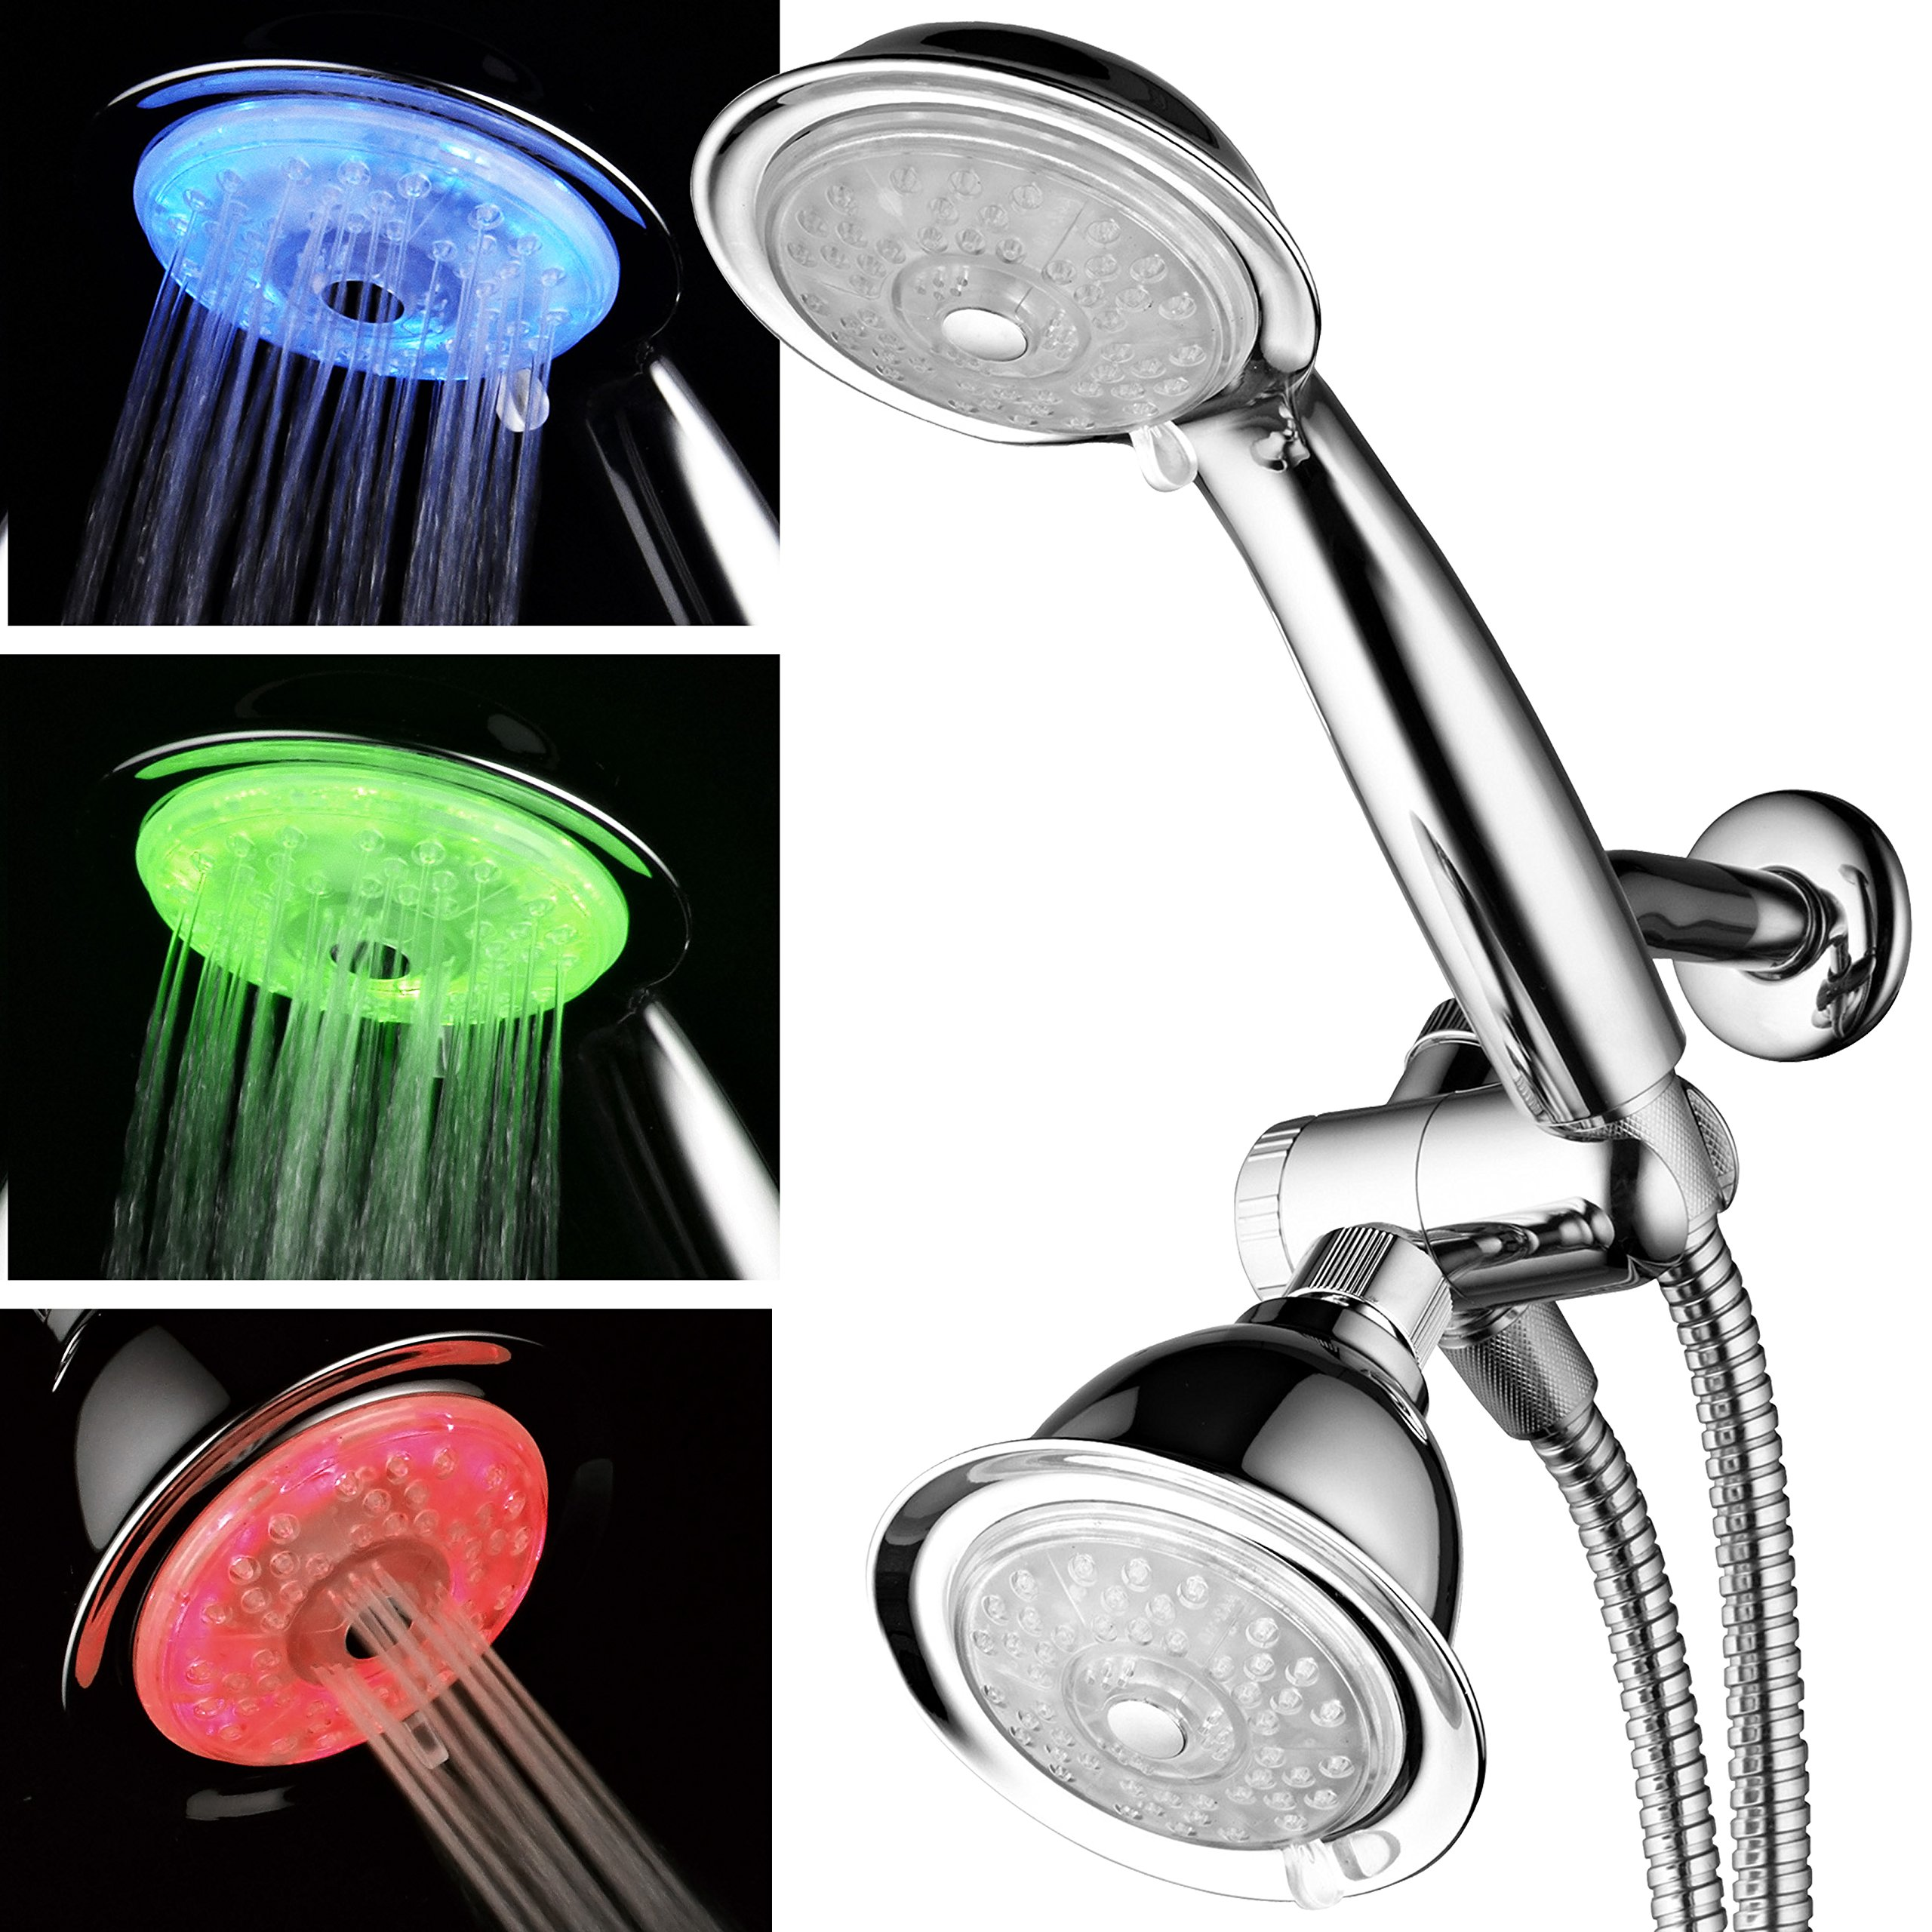 Luminex by PowerSpa 7-Color 24-Setting LED Shower Head Combo with Air Jet LED Turbo Pressure-Boost Nozzle Technology. 7 Vibrant LED colors change automatically every few seconds by POWER SPA